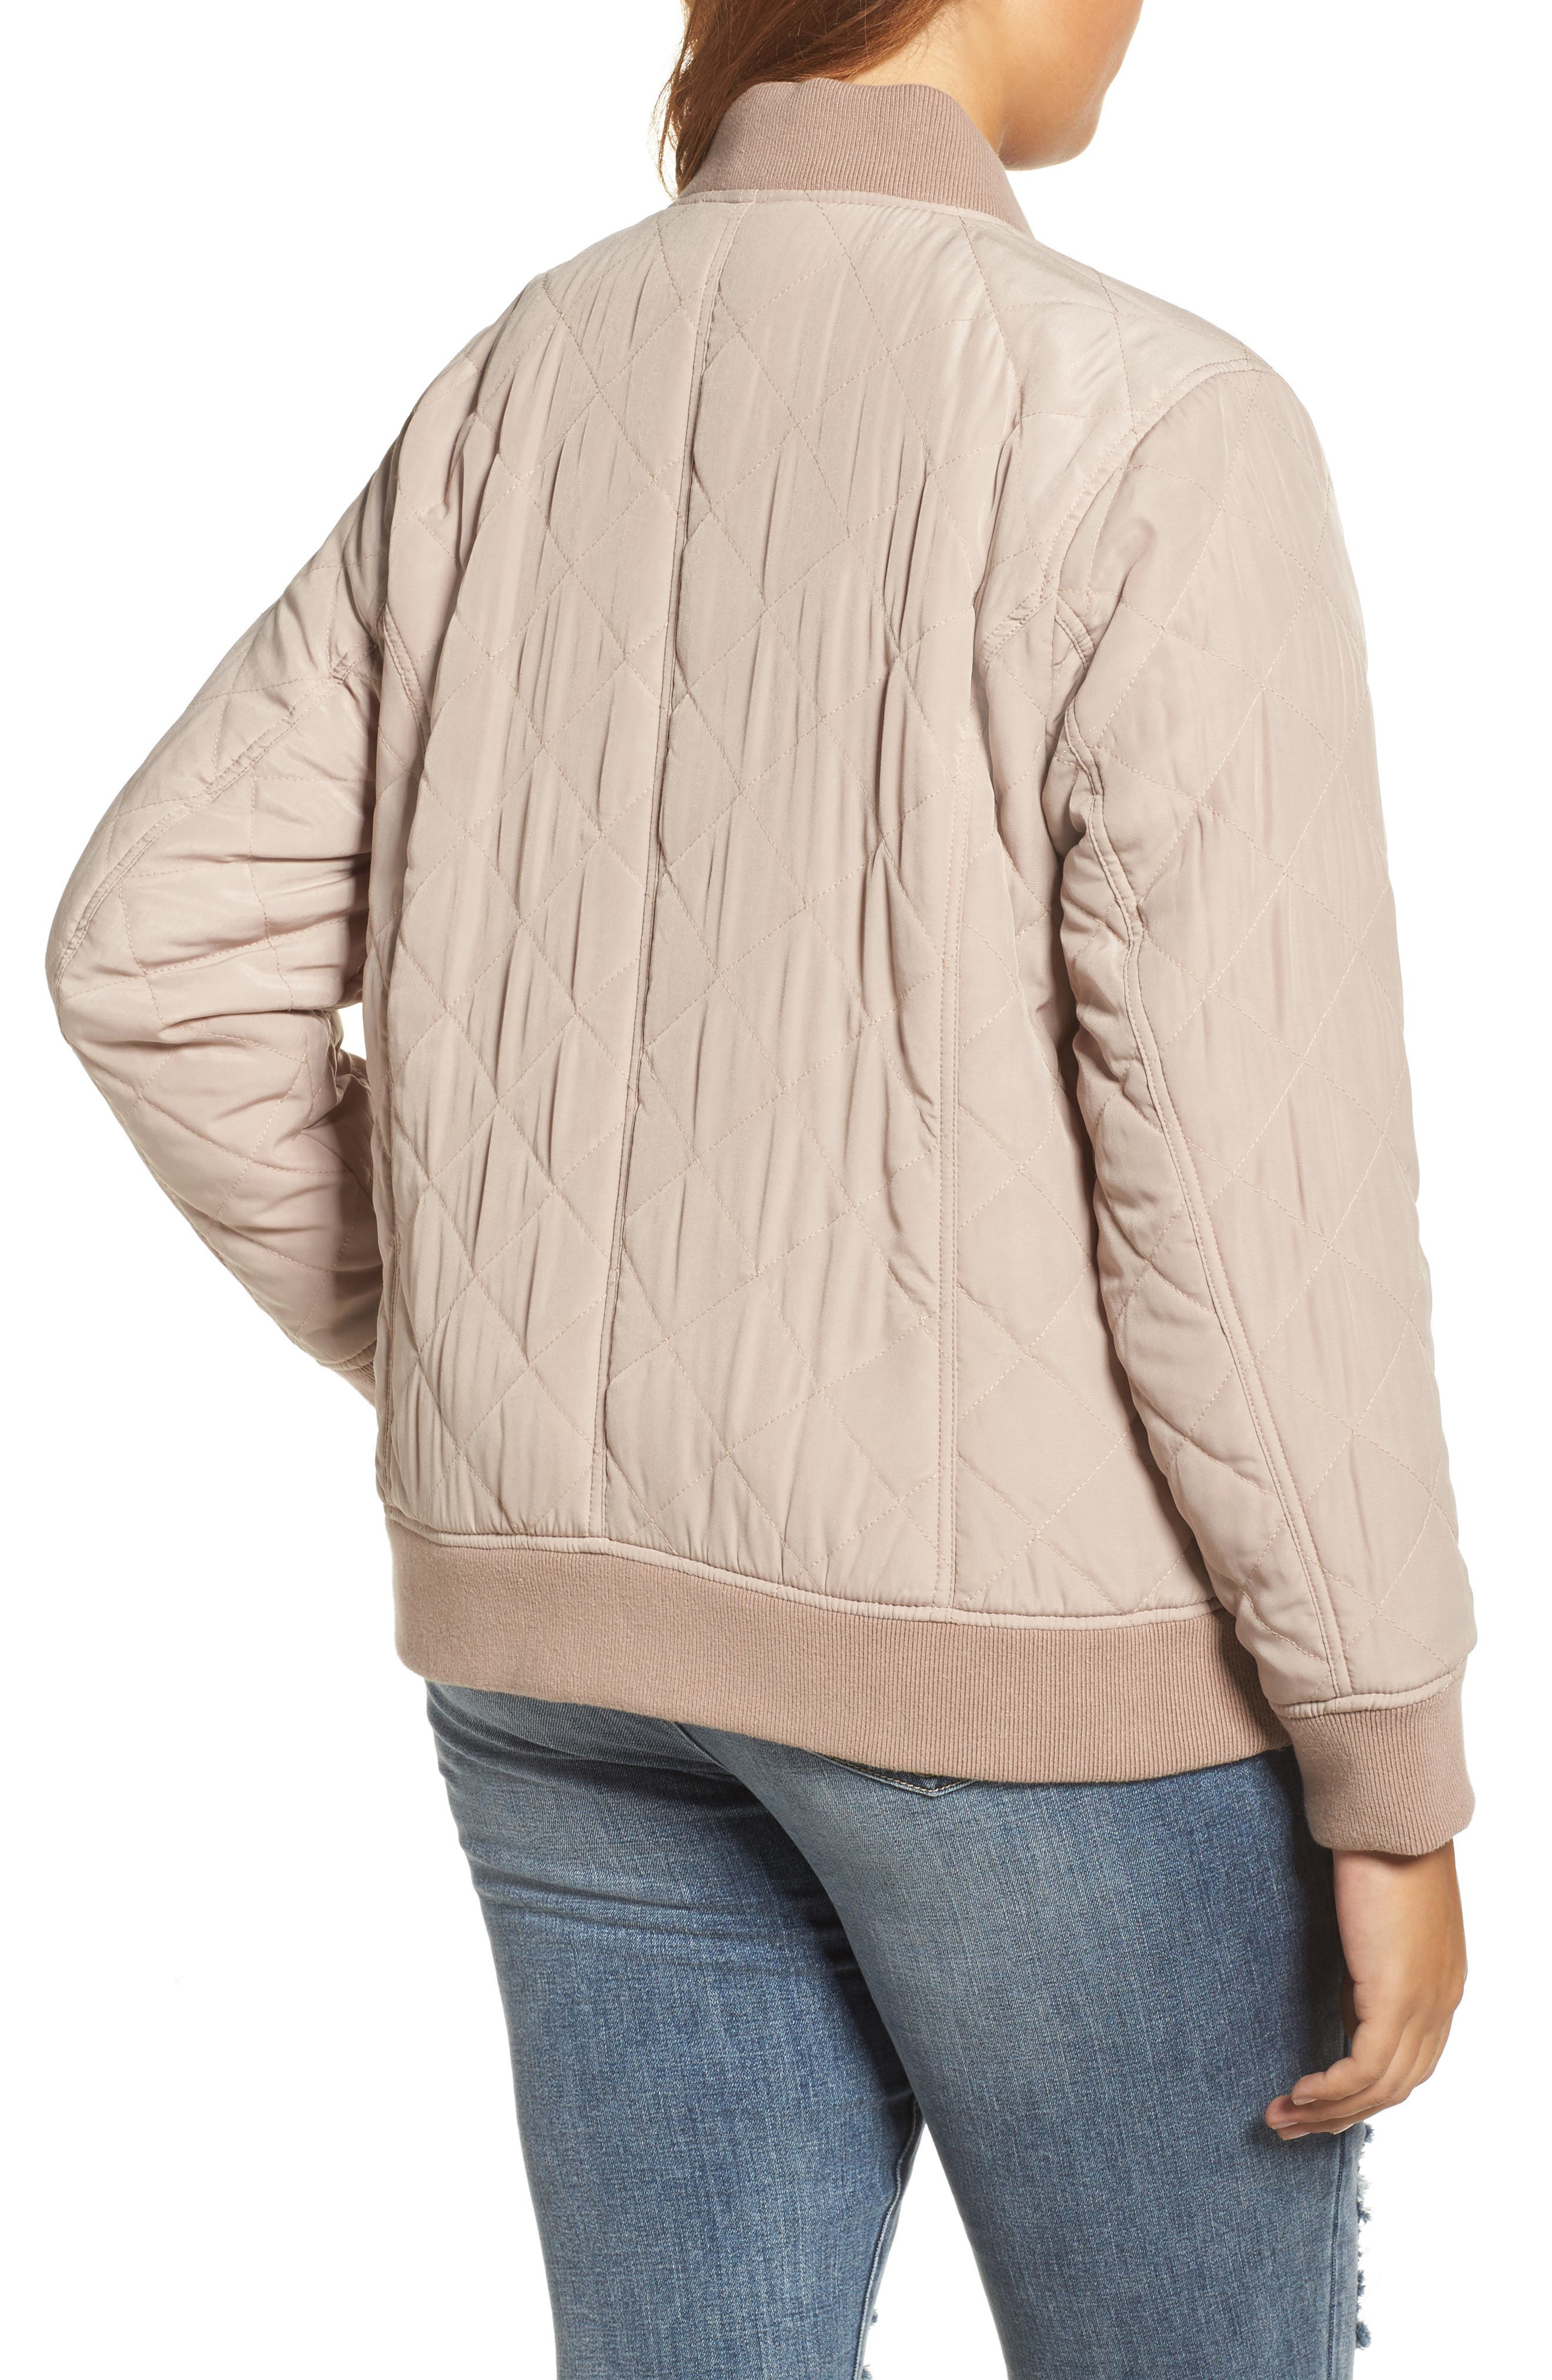 Quilted Bomber Jacket,                             Alternate thumbnail 2, color,                             690